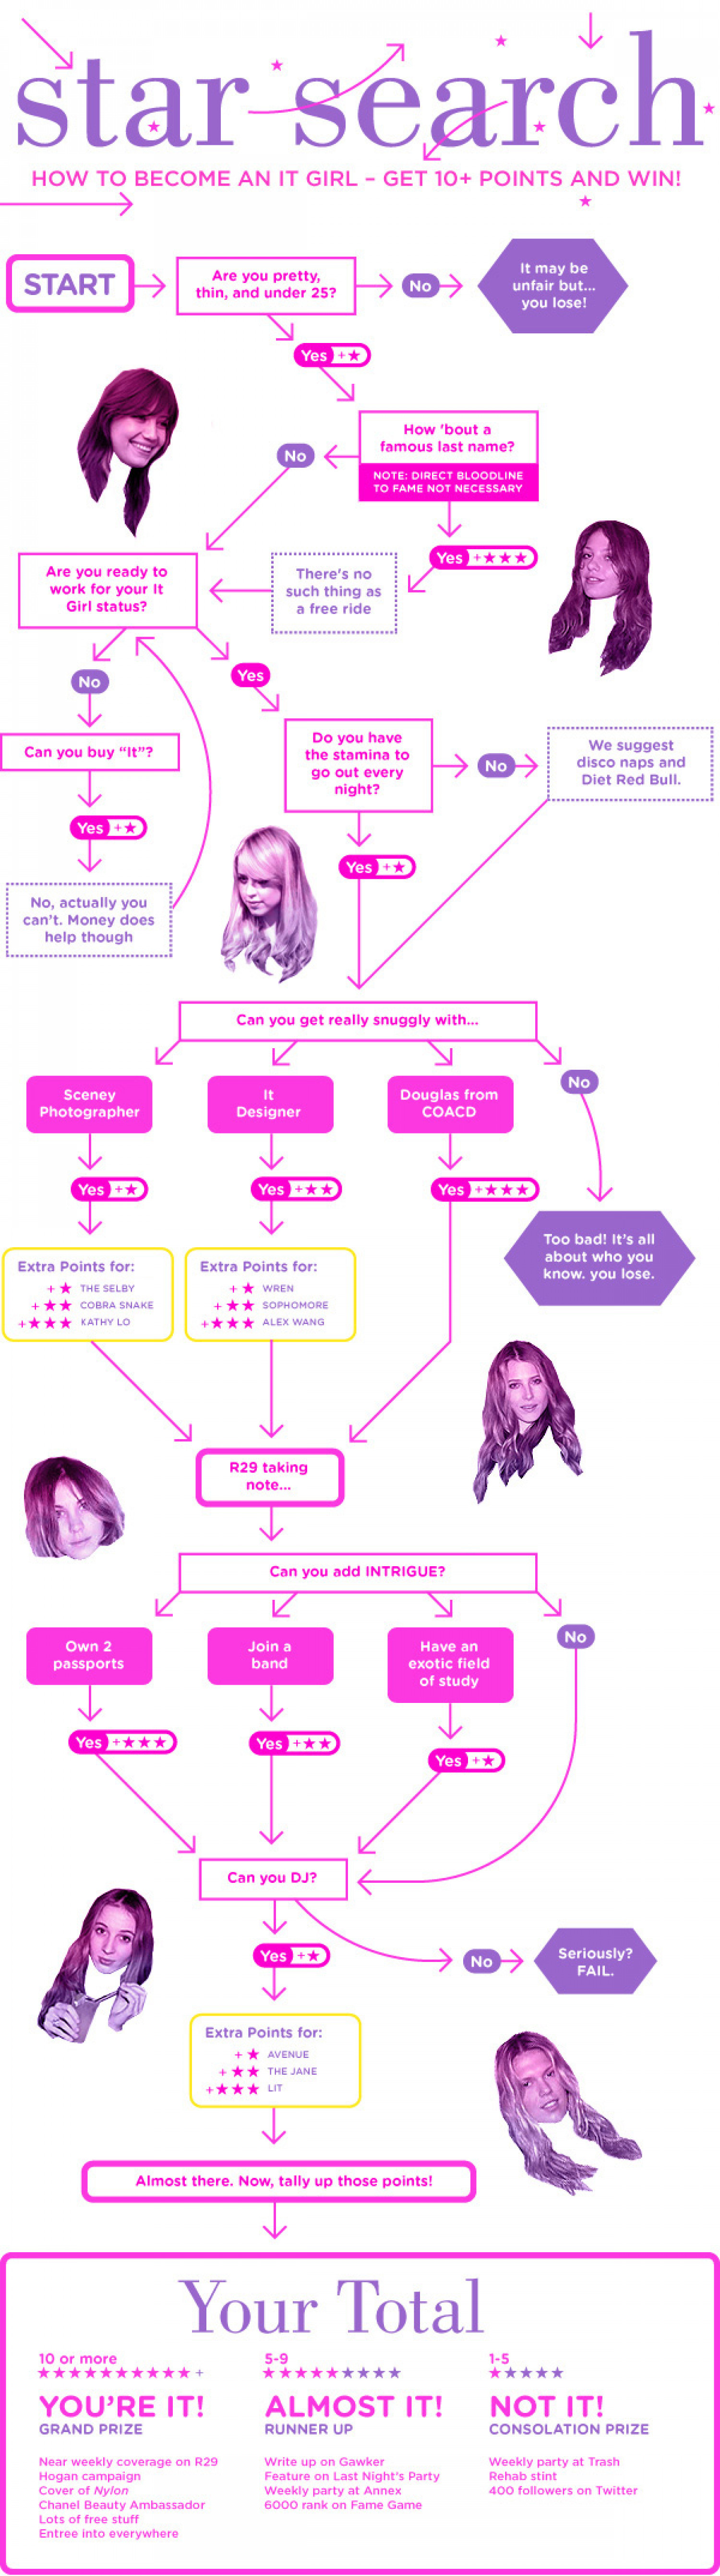 Star Search: How To Become an It Girl Infographic